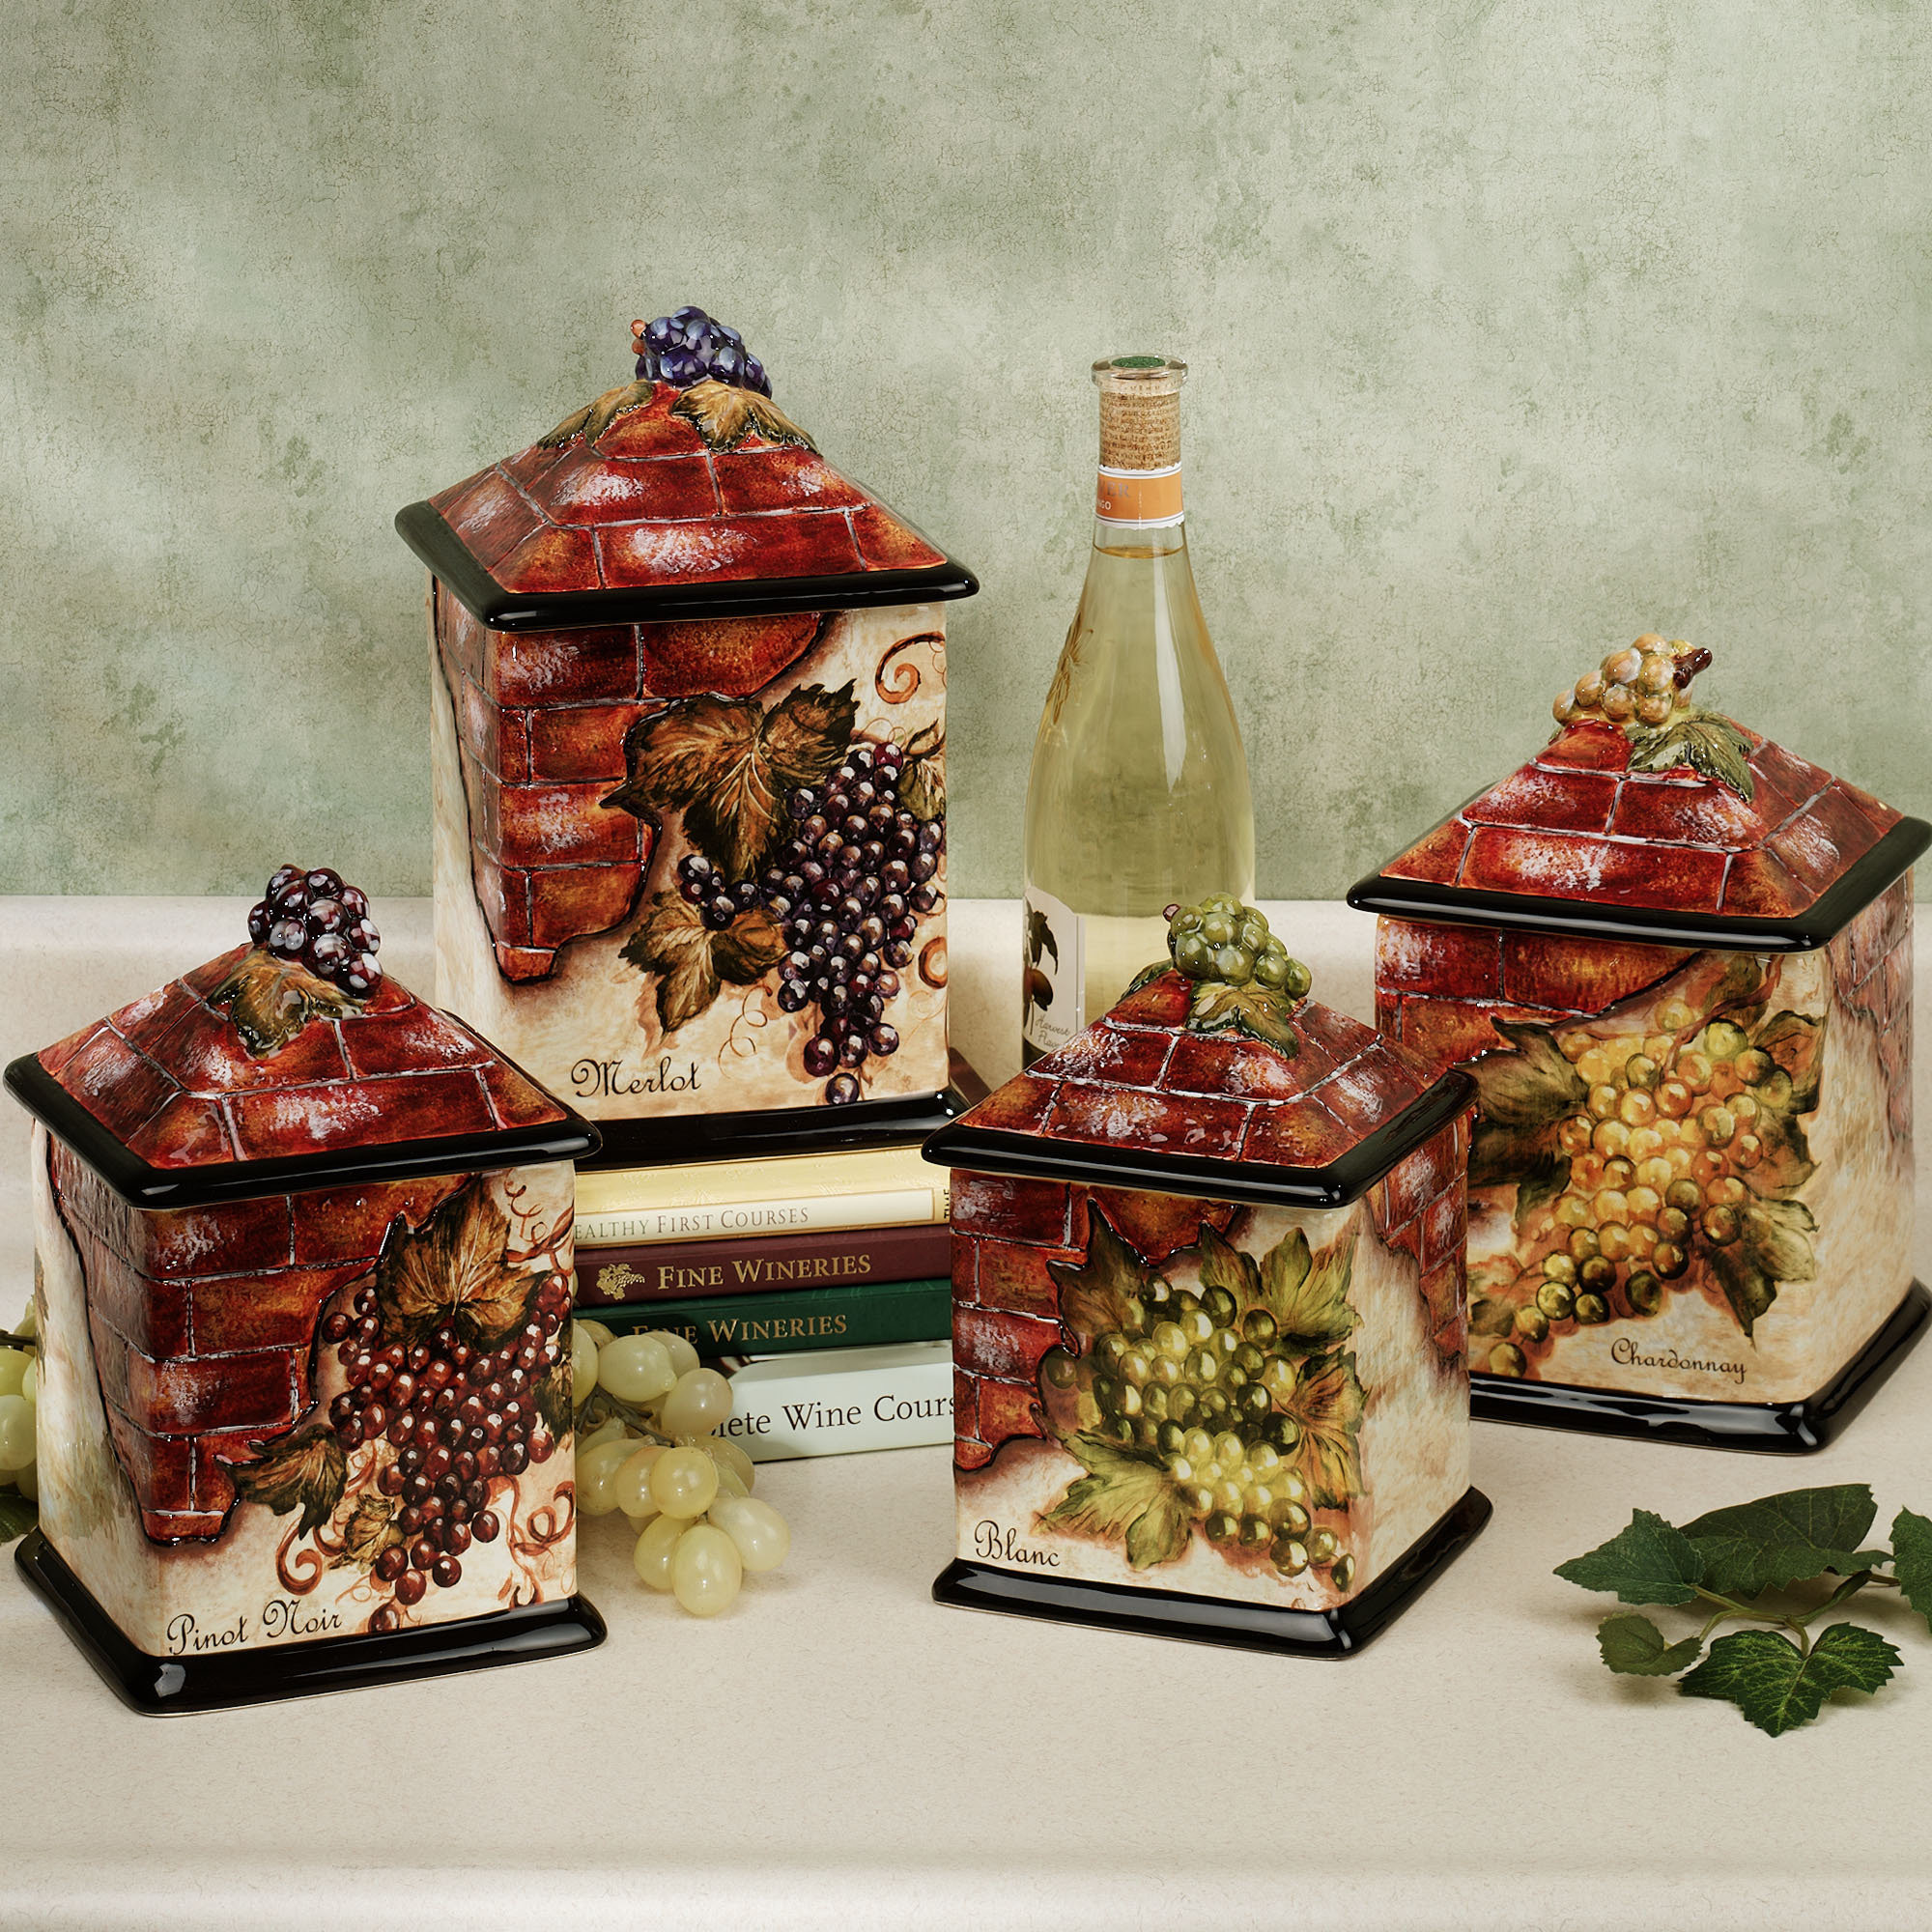 Best ideas about Vineyard Kitchen Decor . Save or Pin Awesome Furniture Wine kitchen decor sets with Now.